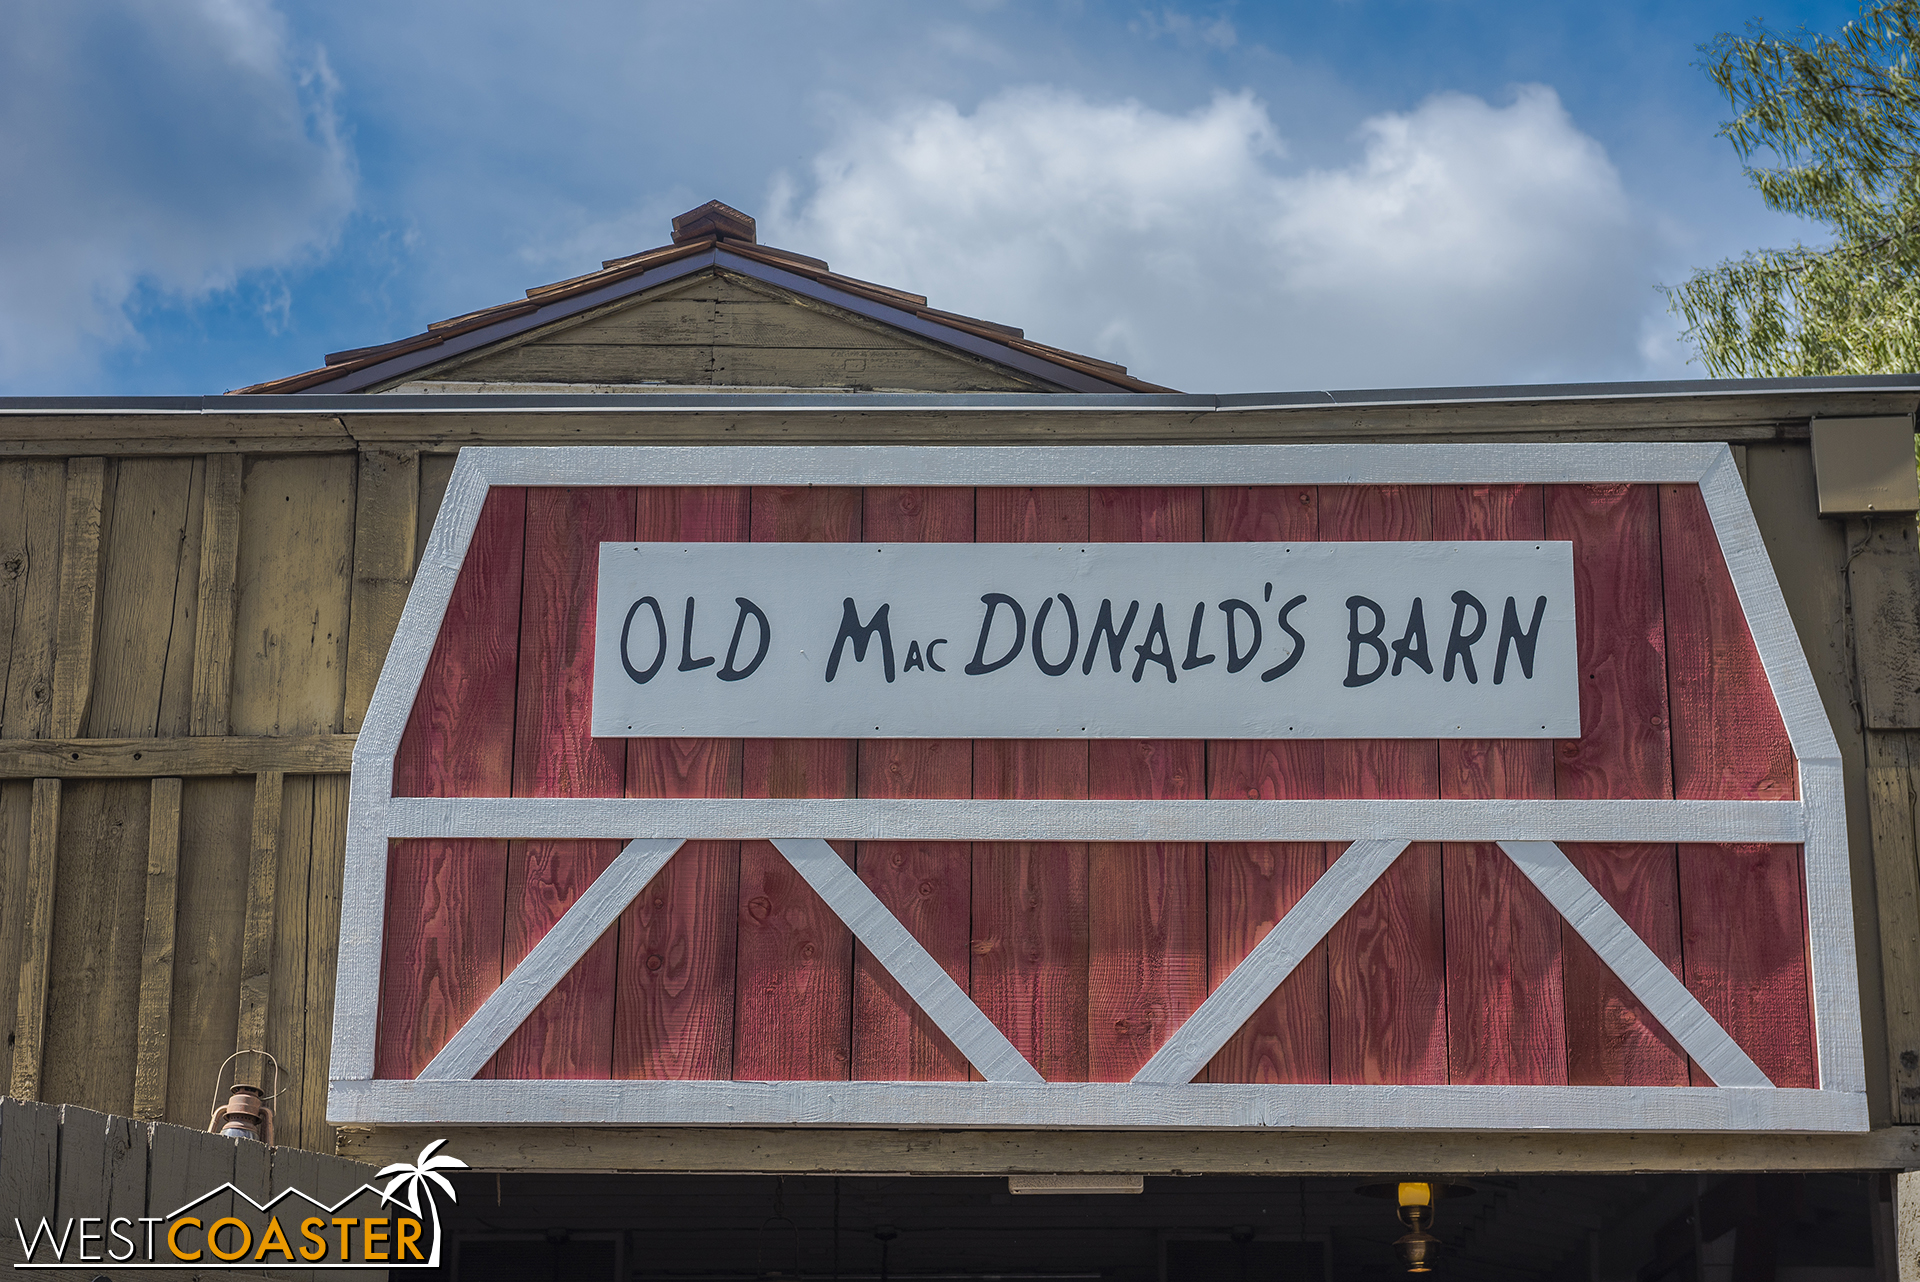 Oh, that's whose farm it is.